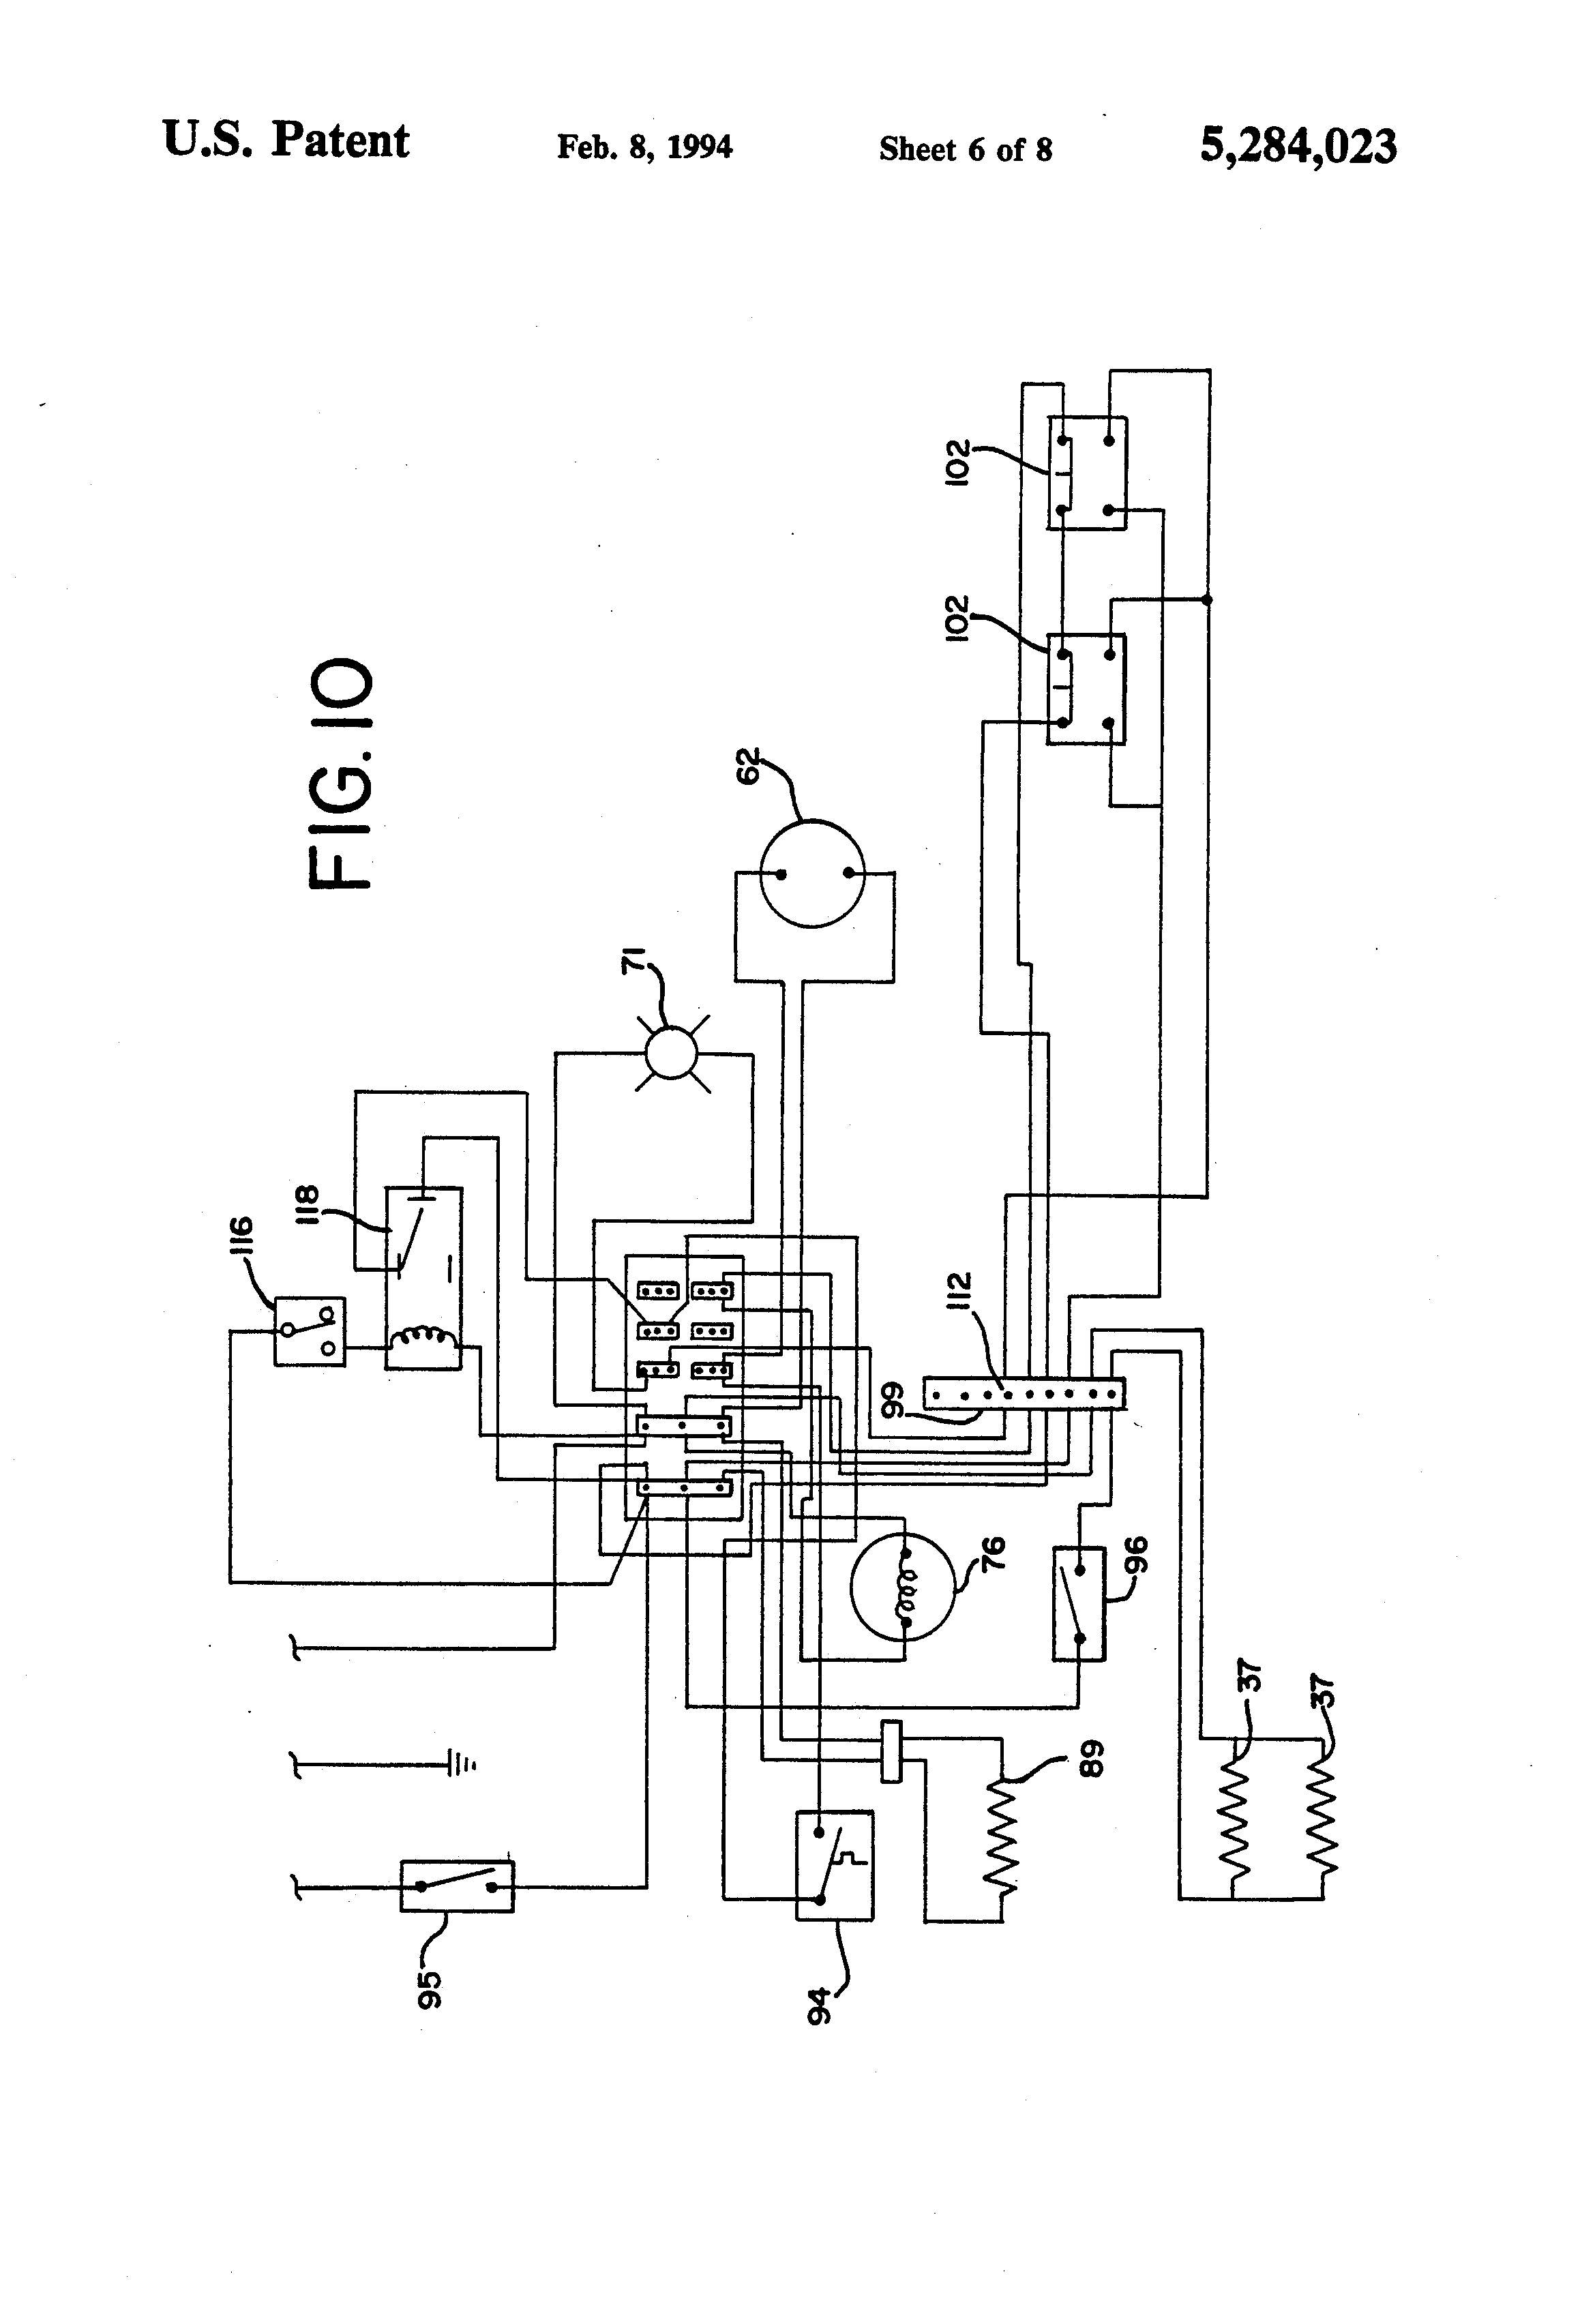 Bohn Evaporator Wiring Diagram : 30 Wiring Diagram Images